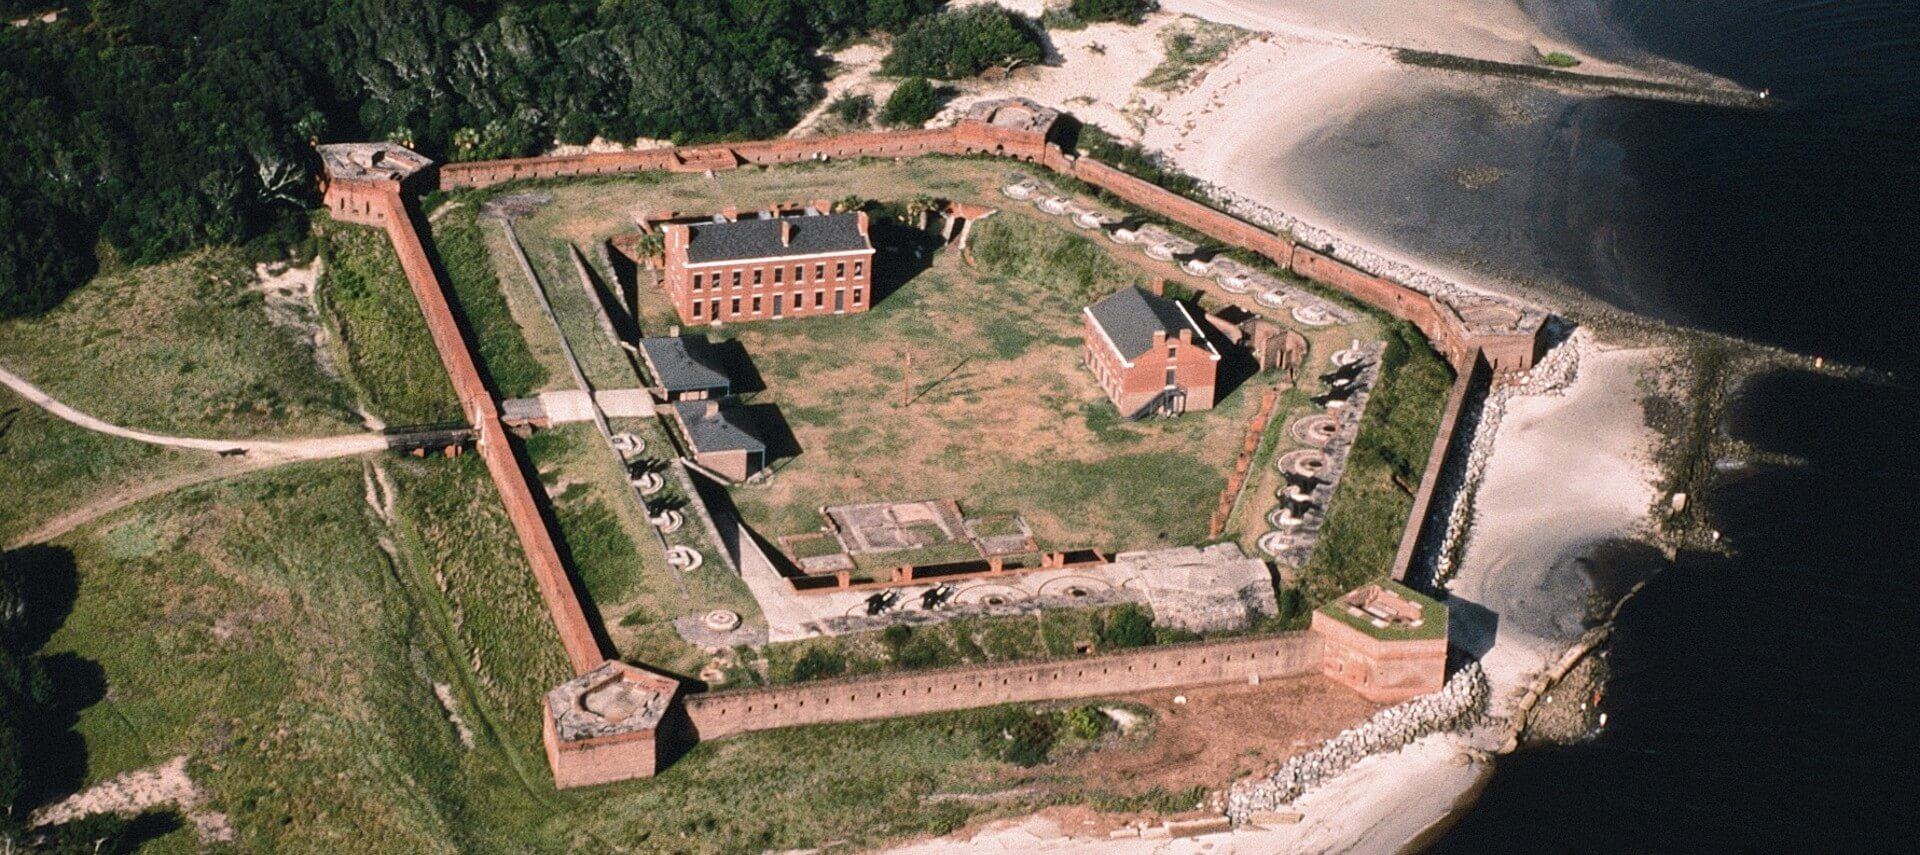 Overhead drone view of a large historic fort next to the ocean and and forested area